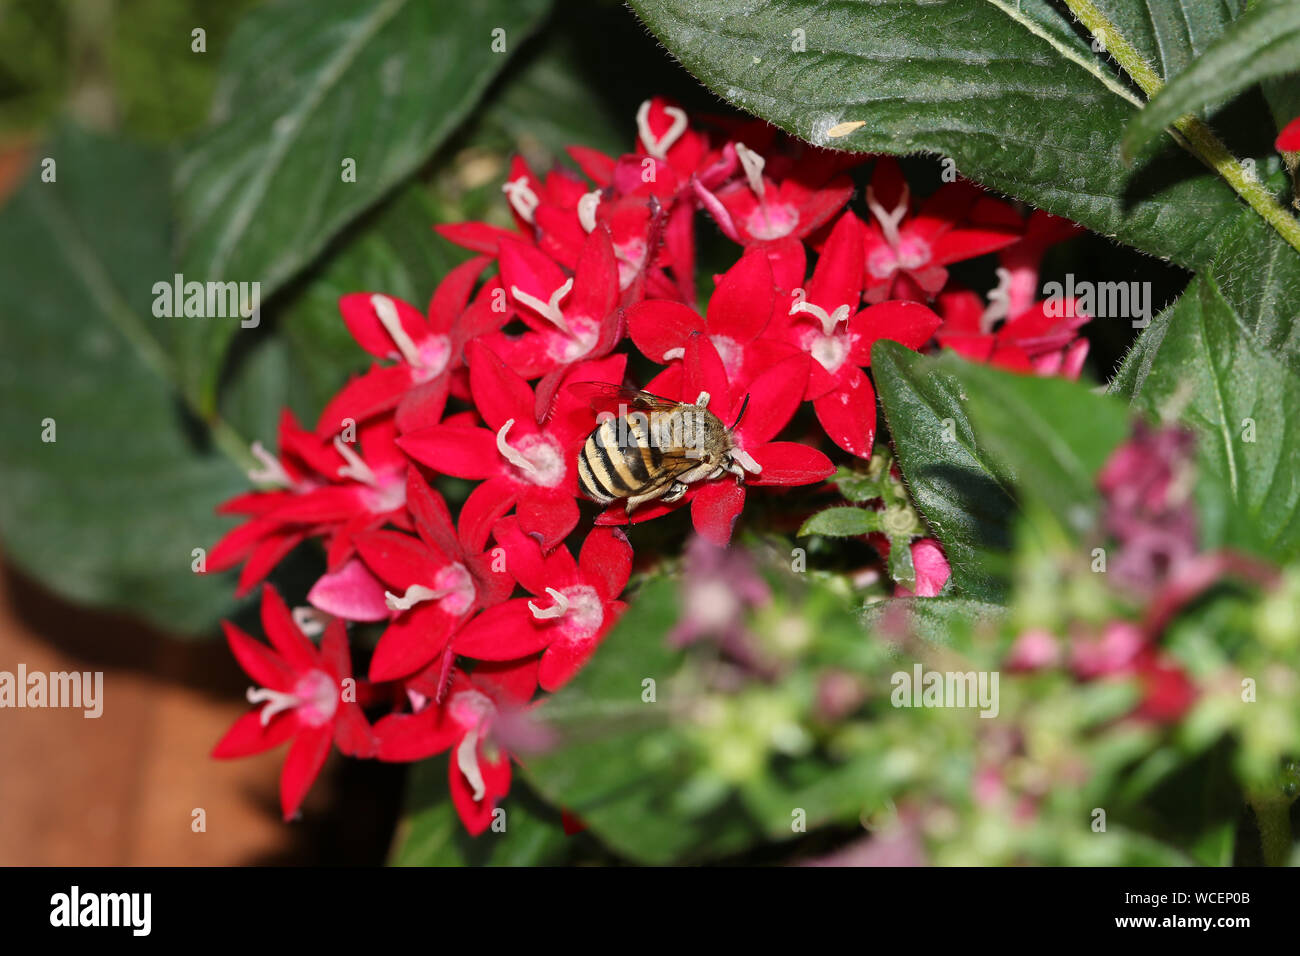 furry black and yellow bee a type of digger bee Latin family amegilla feeding on a red pentas lanceolata also called an Egyptian starcluster flower Stock Photo